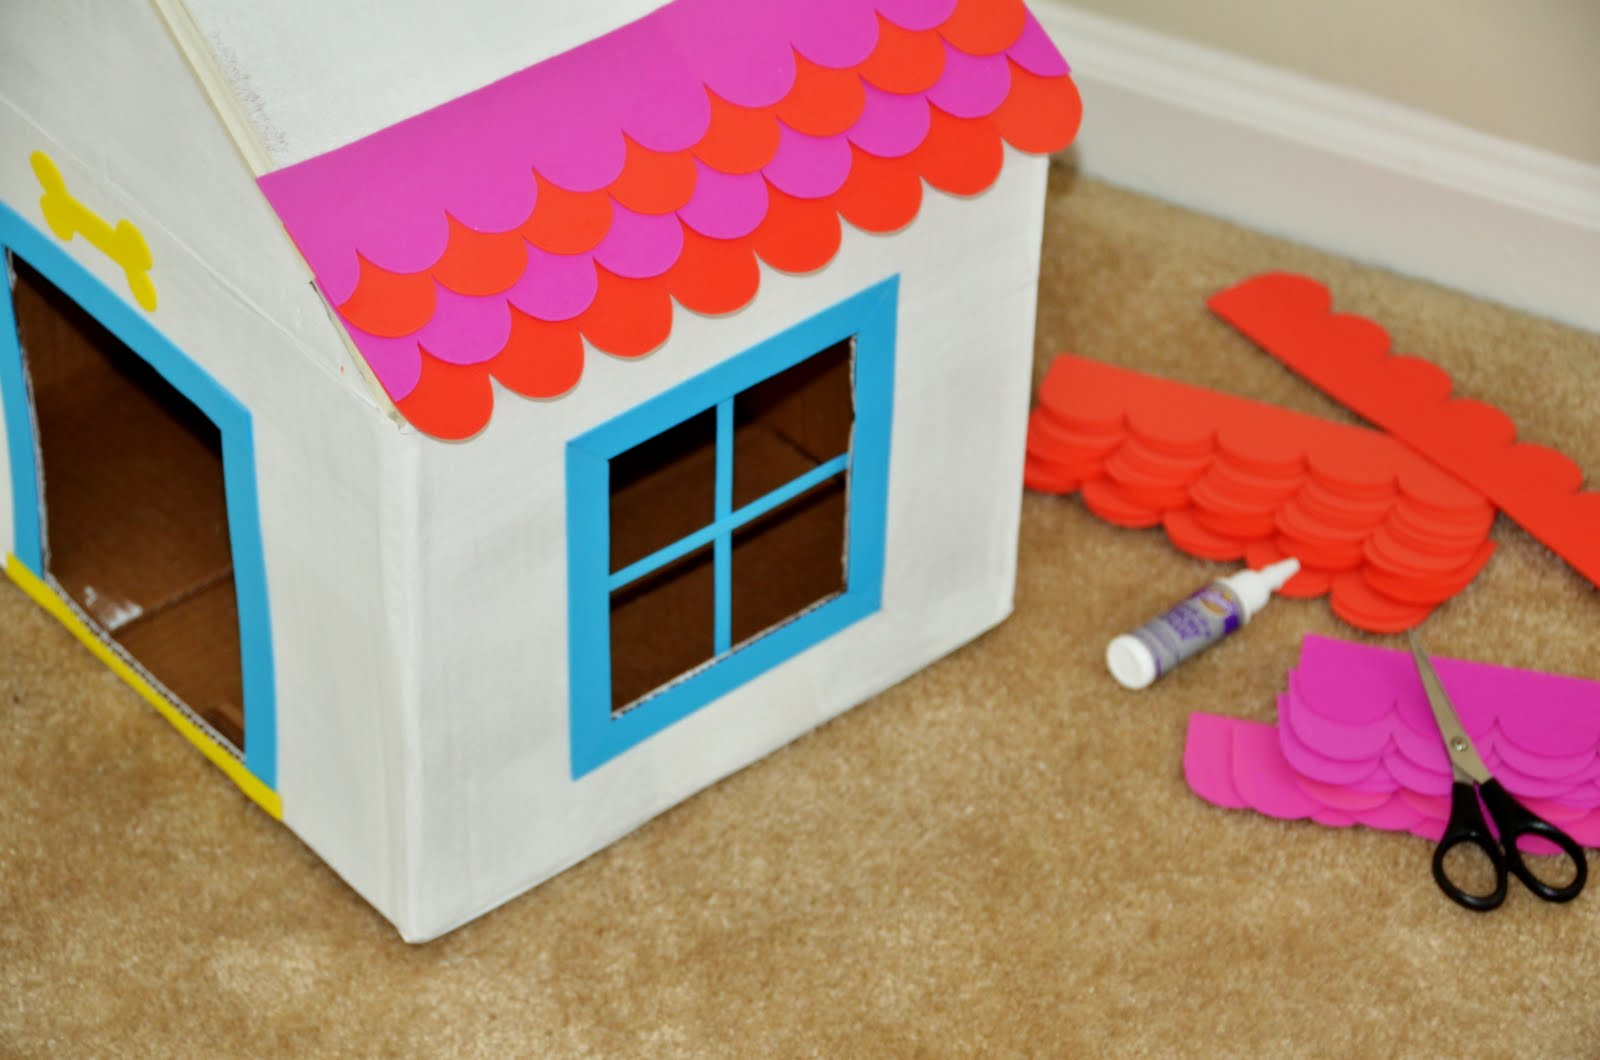 How to Make with Cardboard Box Dog House